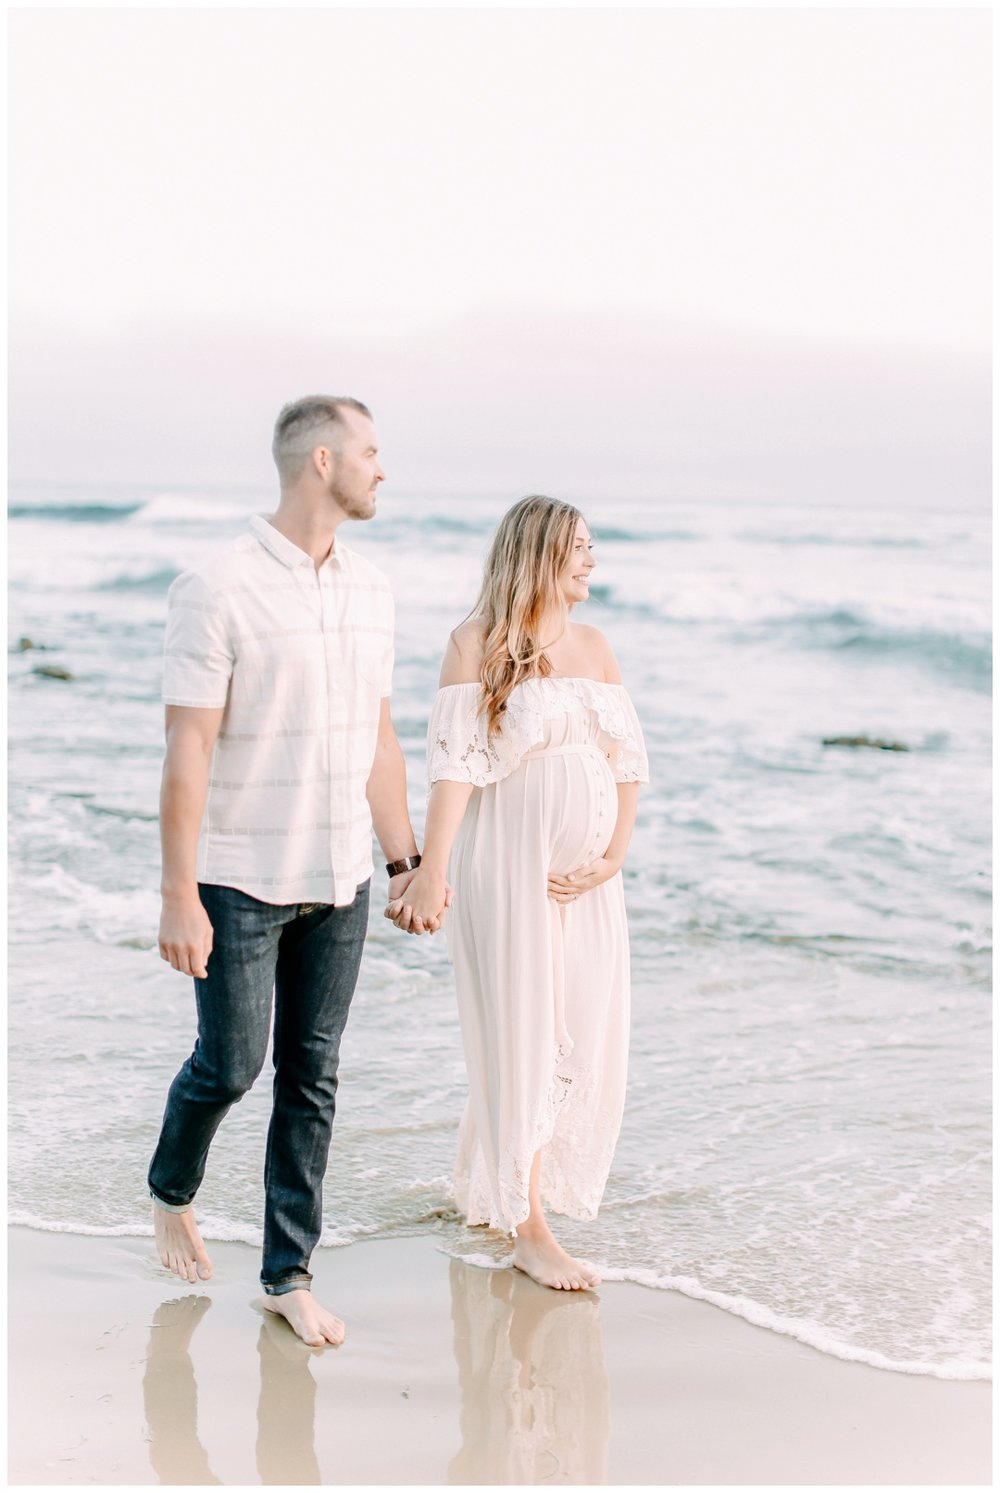 Newport_Beach_Maternity_Photographer_Beach_Maternity_Photography_Cori_Kleckner_Photography_1040.jpg